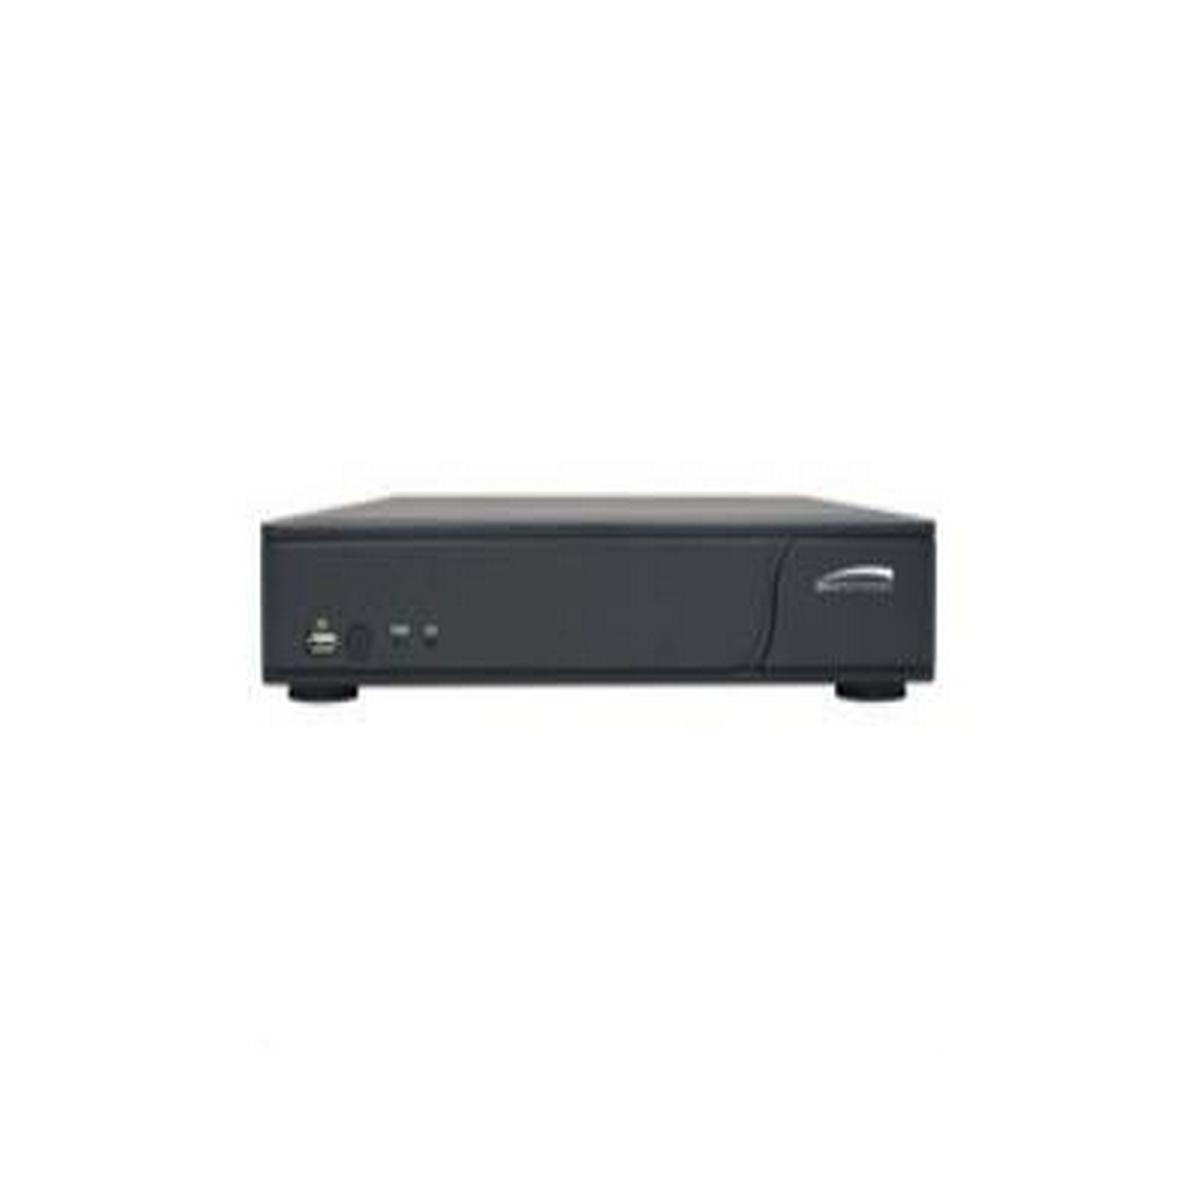 Speco D8RS500 8 Channel H.264 DVR, 500GB HDD